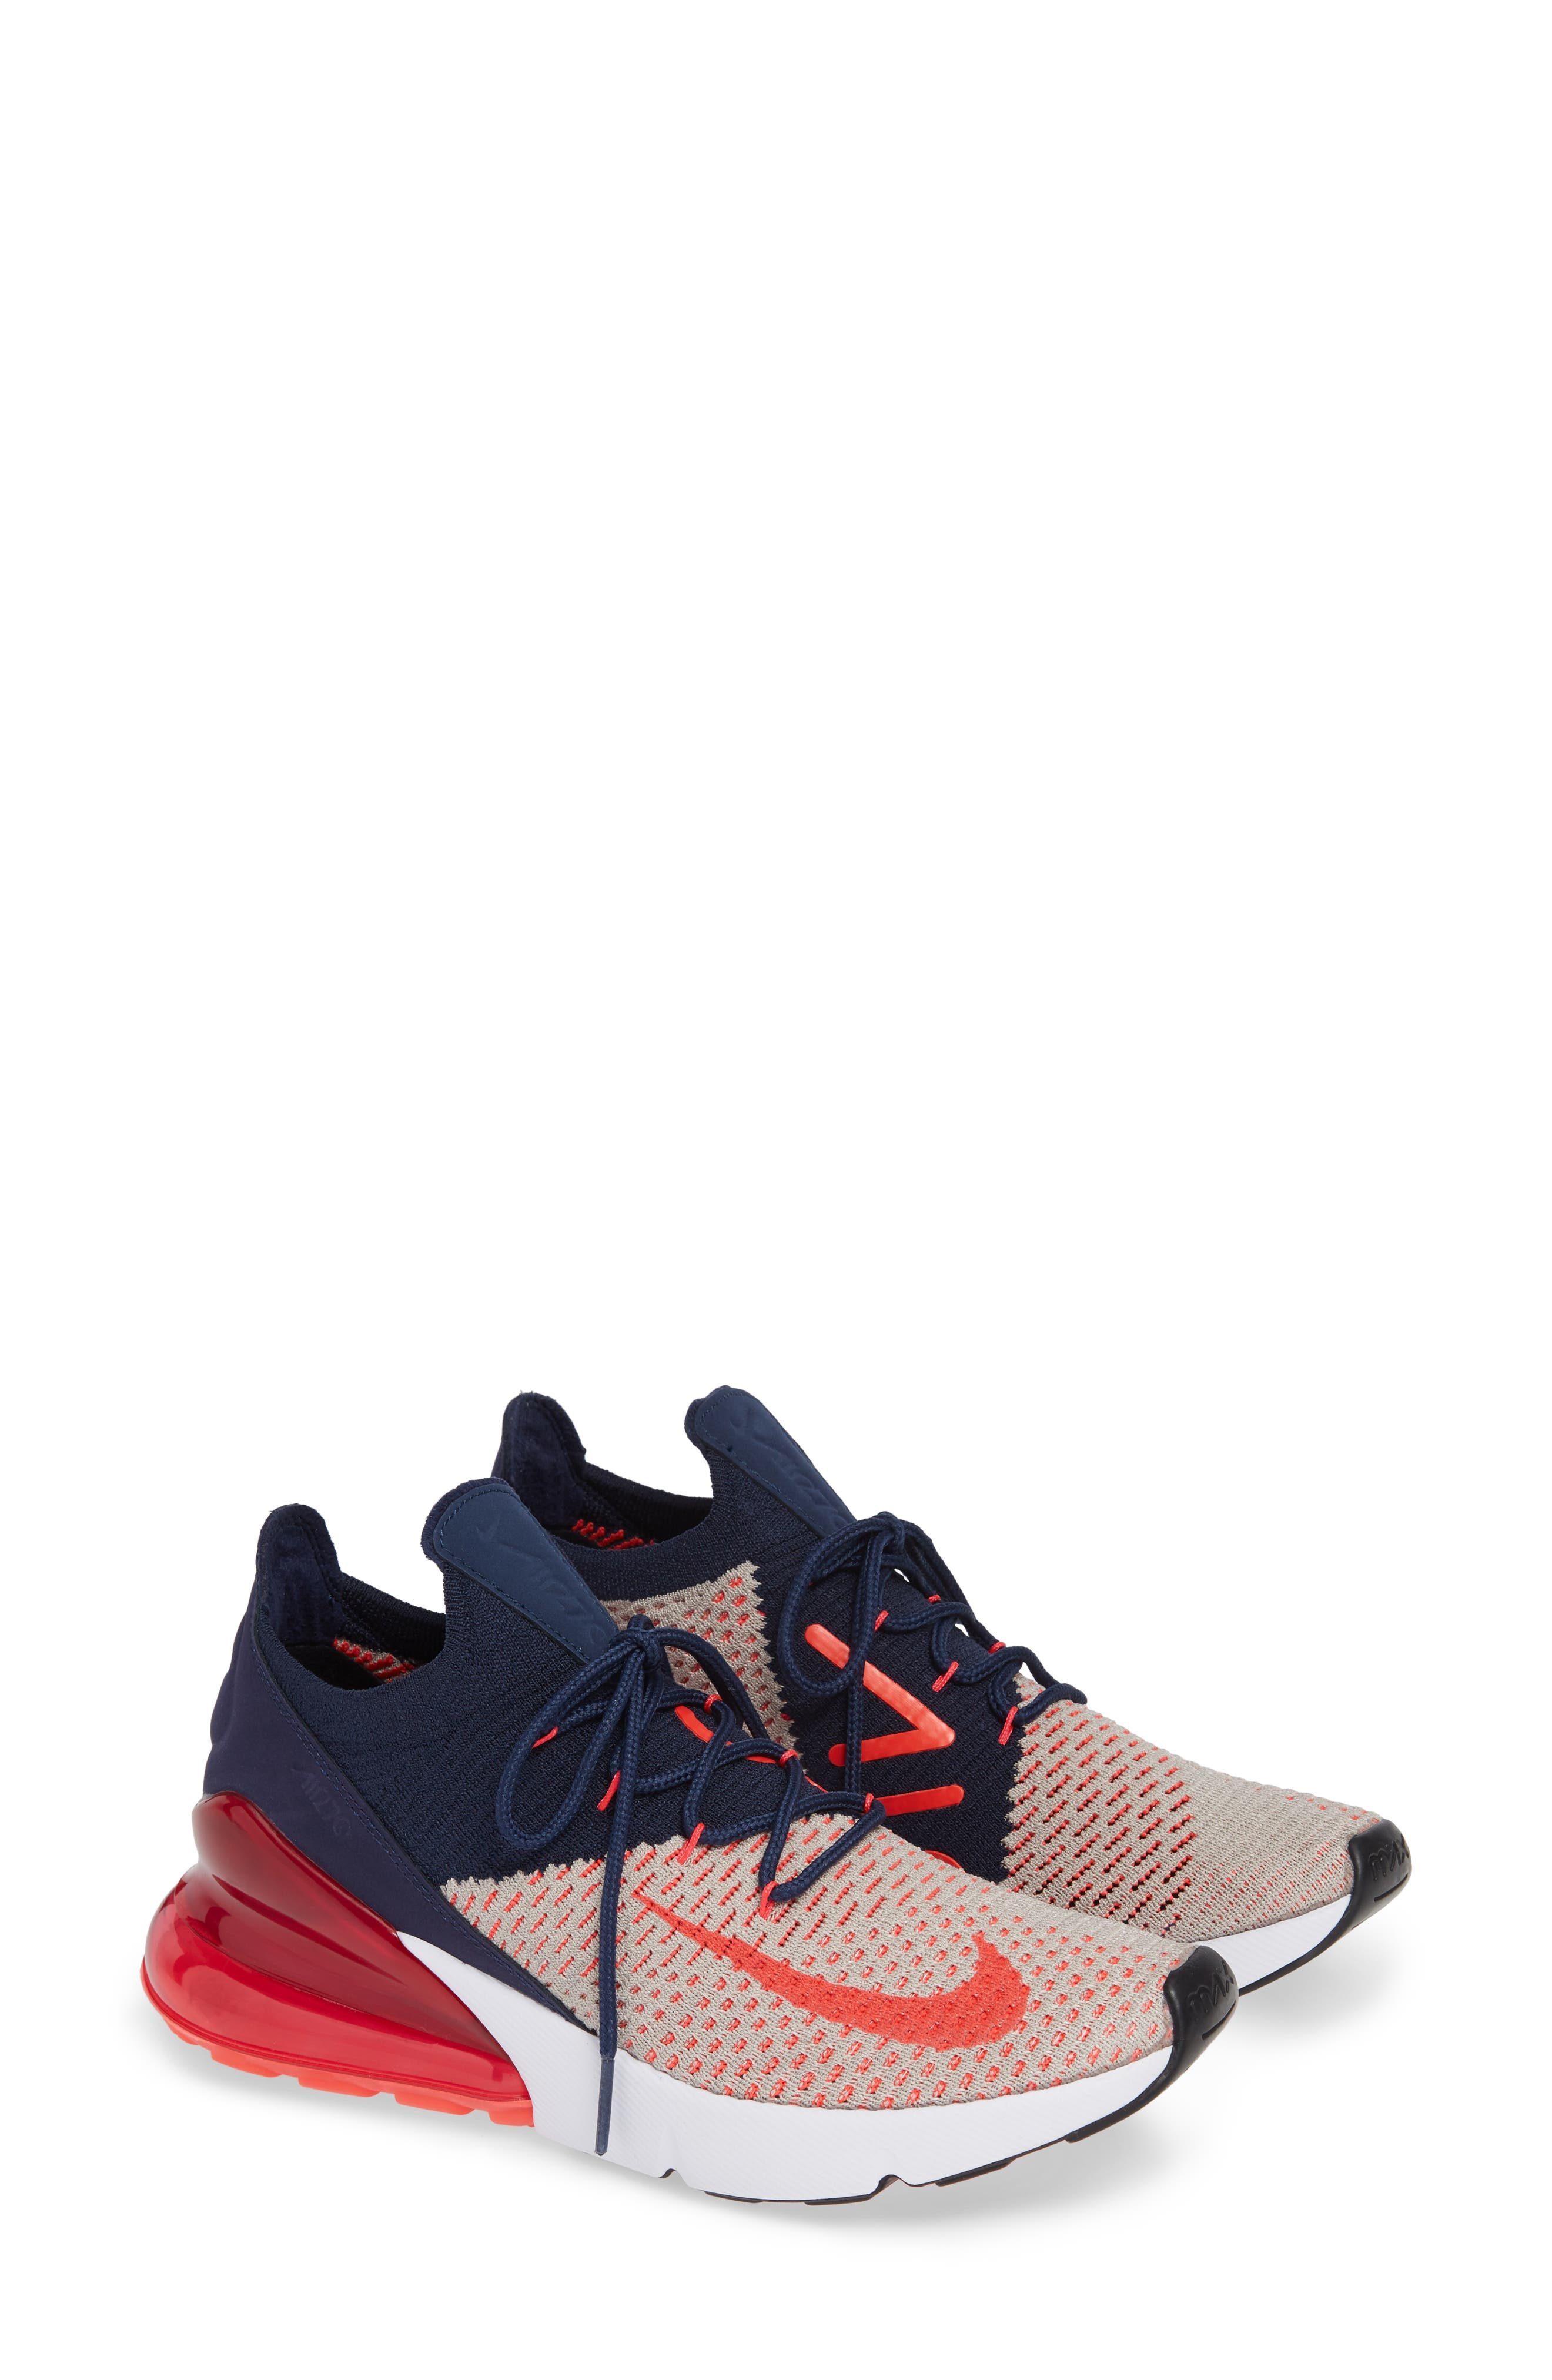 Air Max 270 Flyknit Sneaker,                         Main,                         color, Moon Particle/ Red Orbit/ Navy